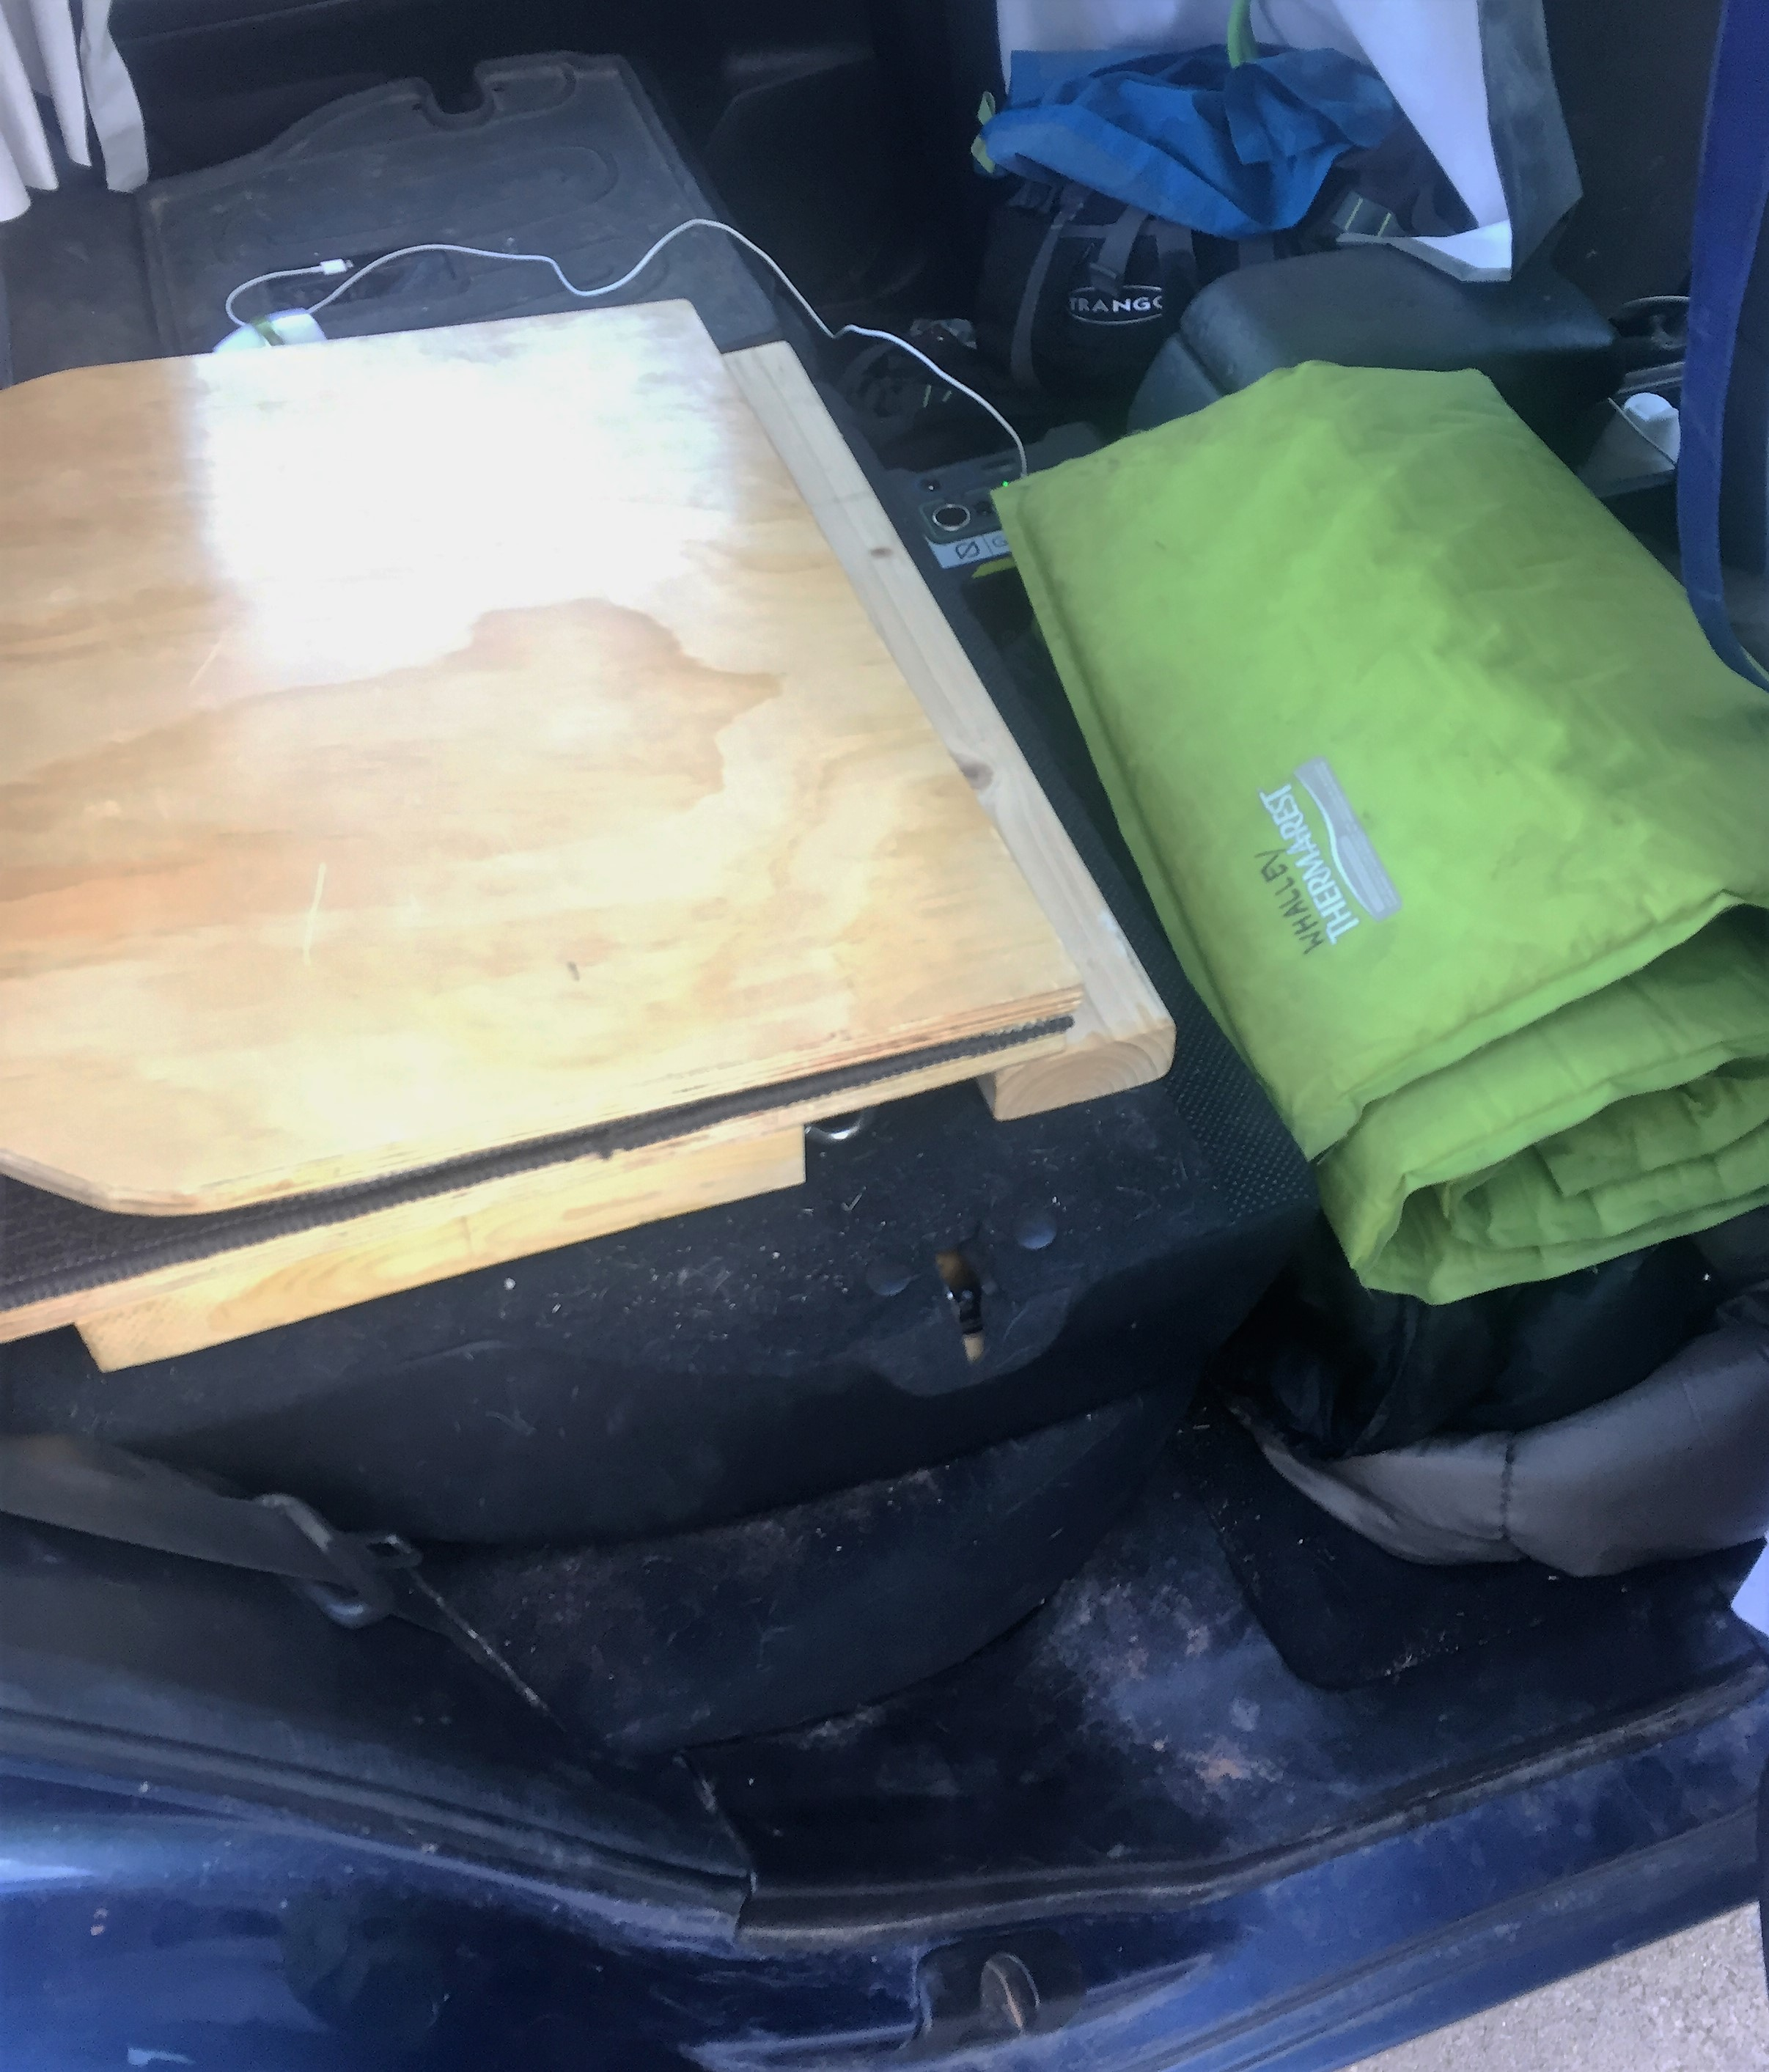 Platform folded up so front seat can slide back. Bed storage in footwell. I need to vacuum.